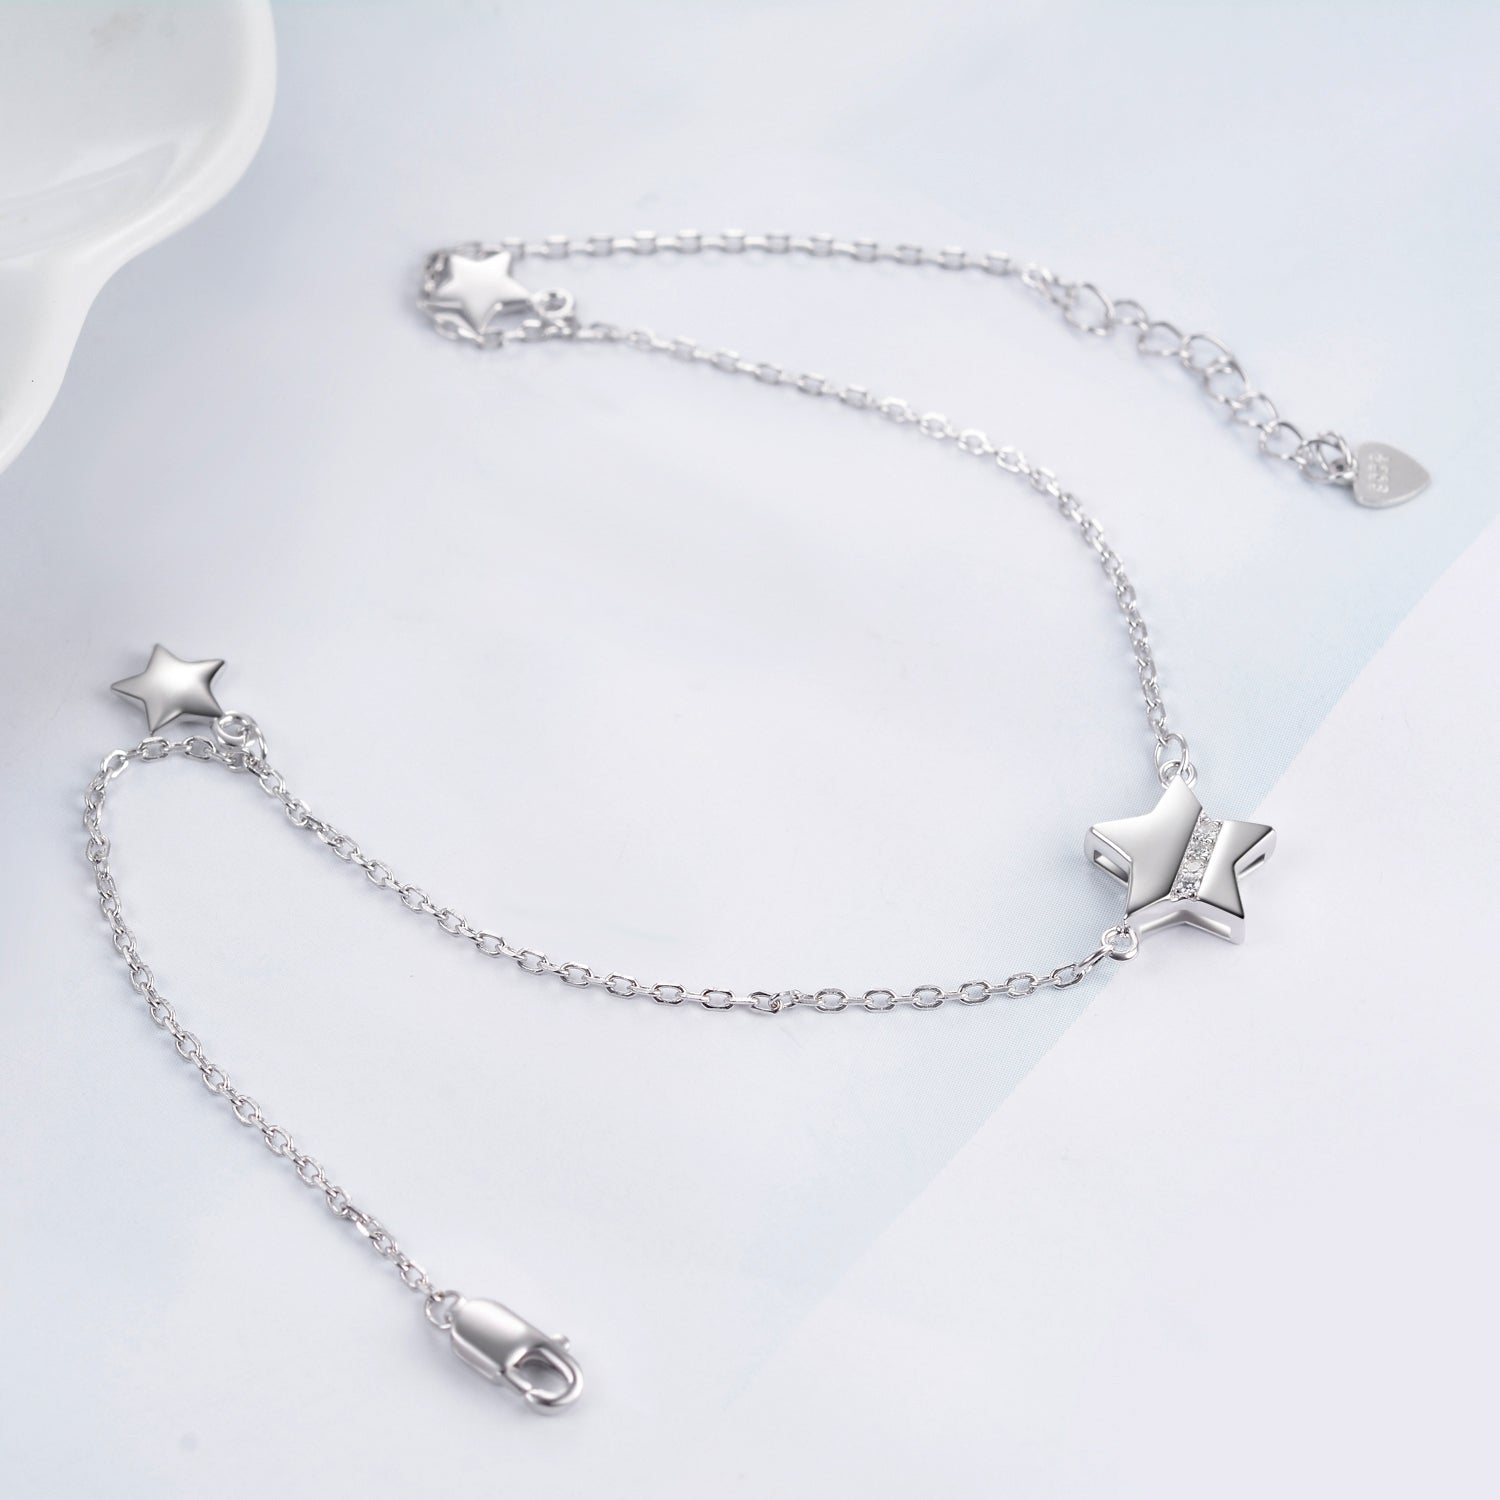 Pentagram Anklet Little Stars Pendant Bracelet For Girl Foot Jewelry Design